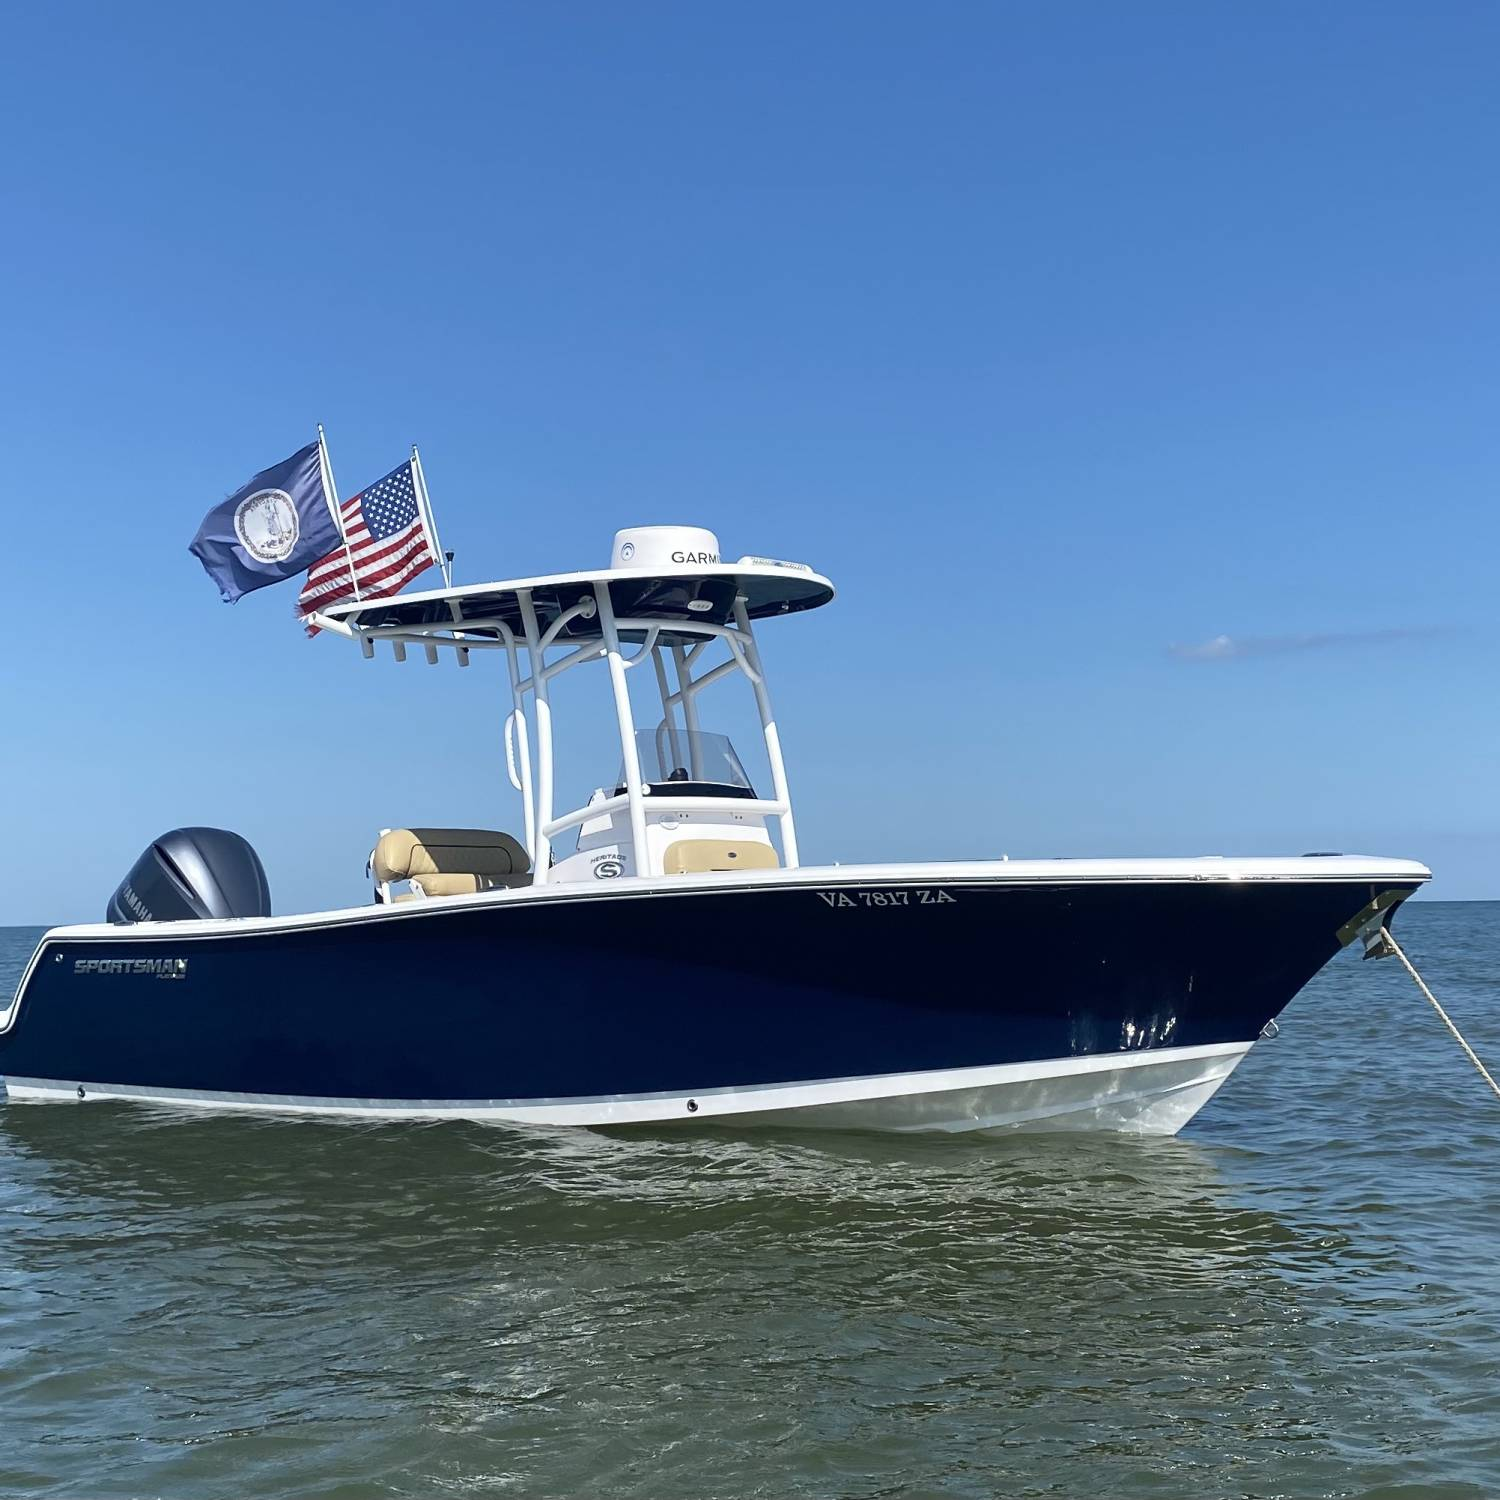 Title: True Companion - On board their Sportsman Heritage 231 Center Console - Location: New Point Comfort, Chesapeake Bay, VA. Participating in the Photo Contest #SportsmanJuly2021